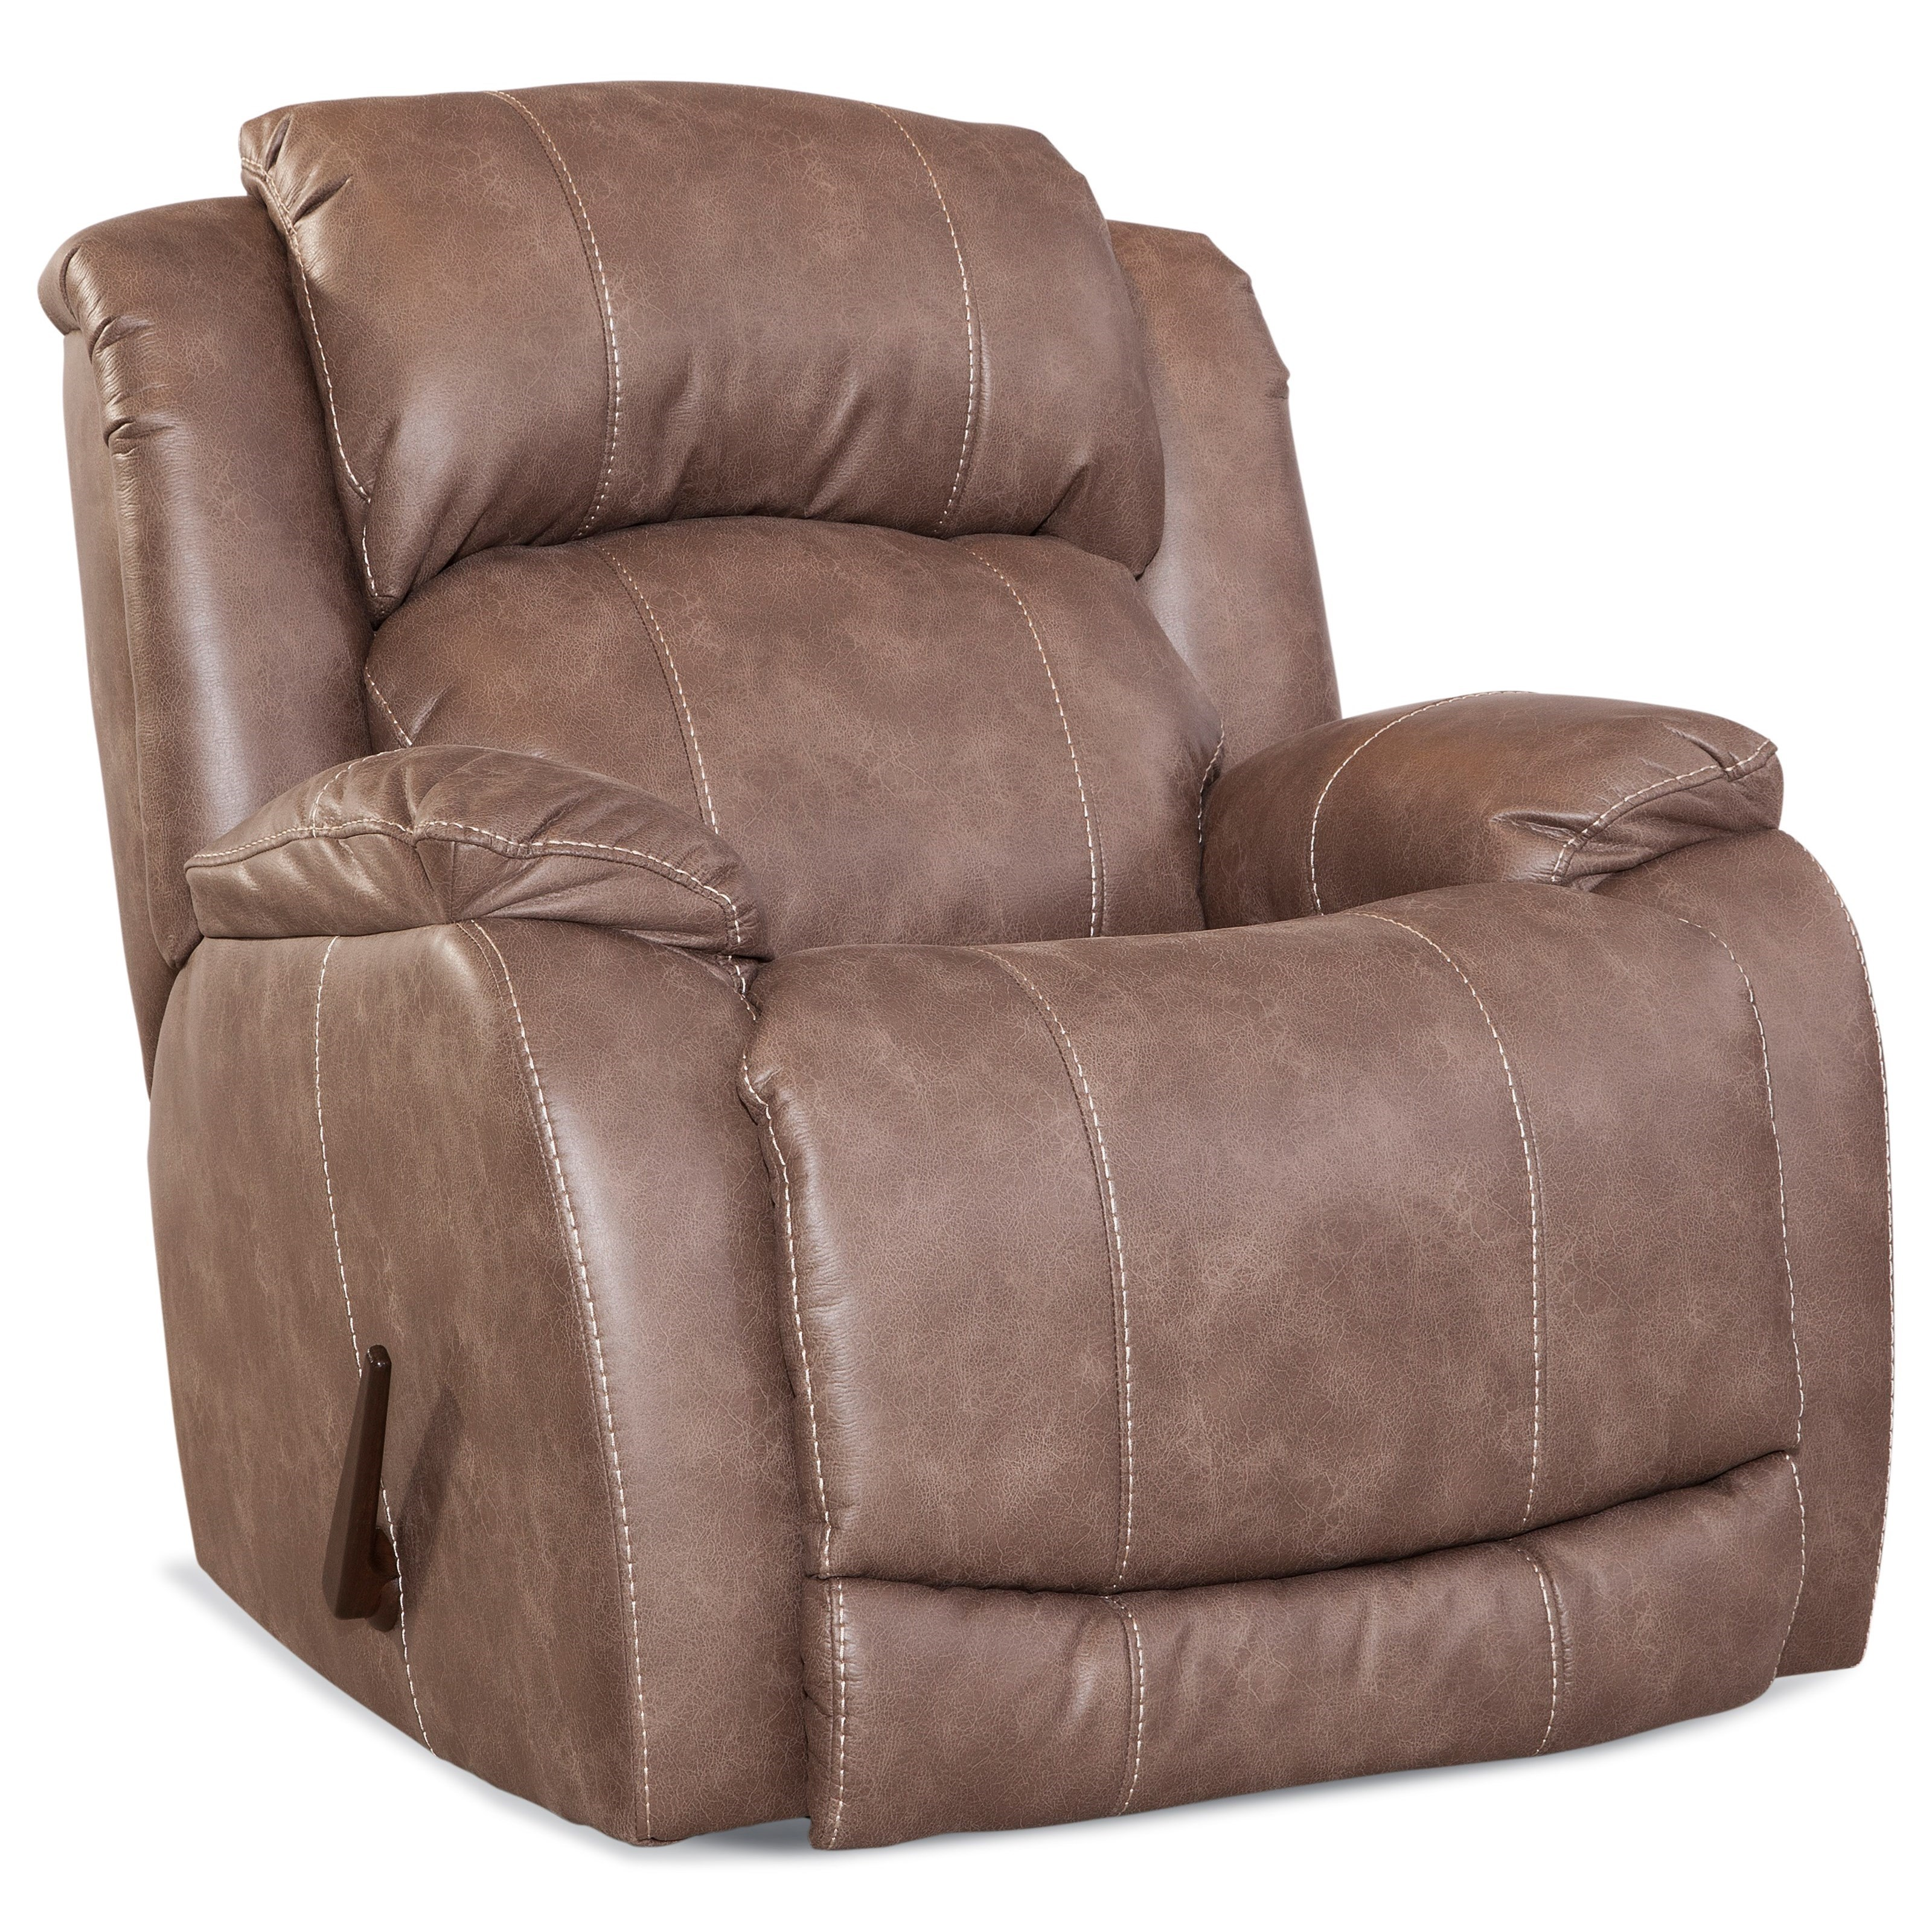 HomeStretch 137 Collection Casual Rocker Recliner - Item Number: 137-91-17